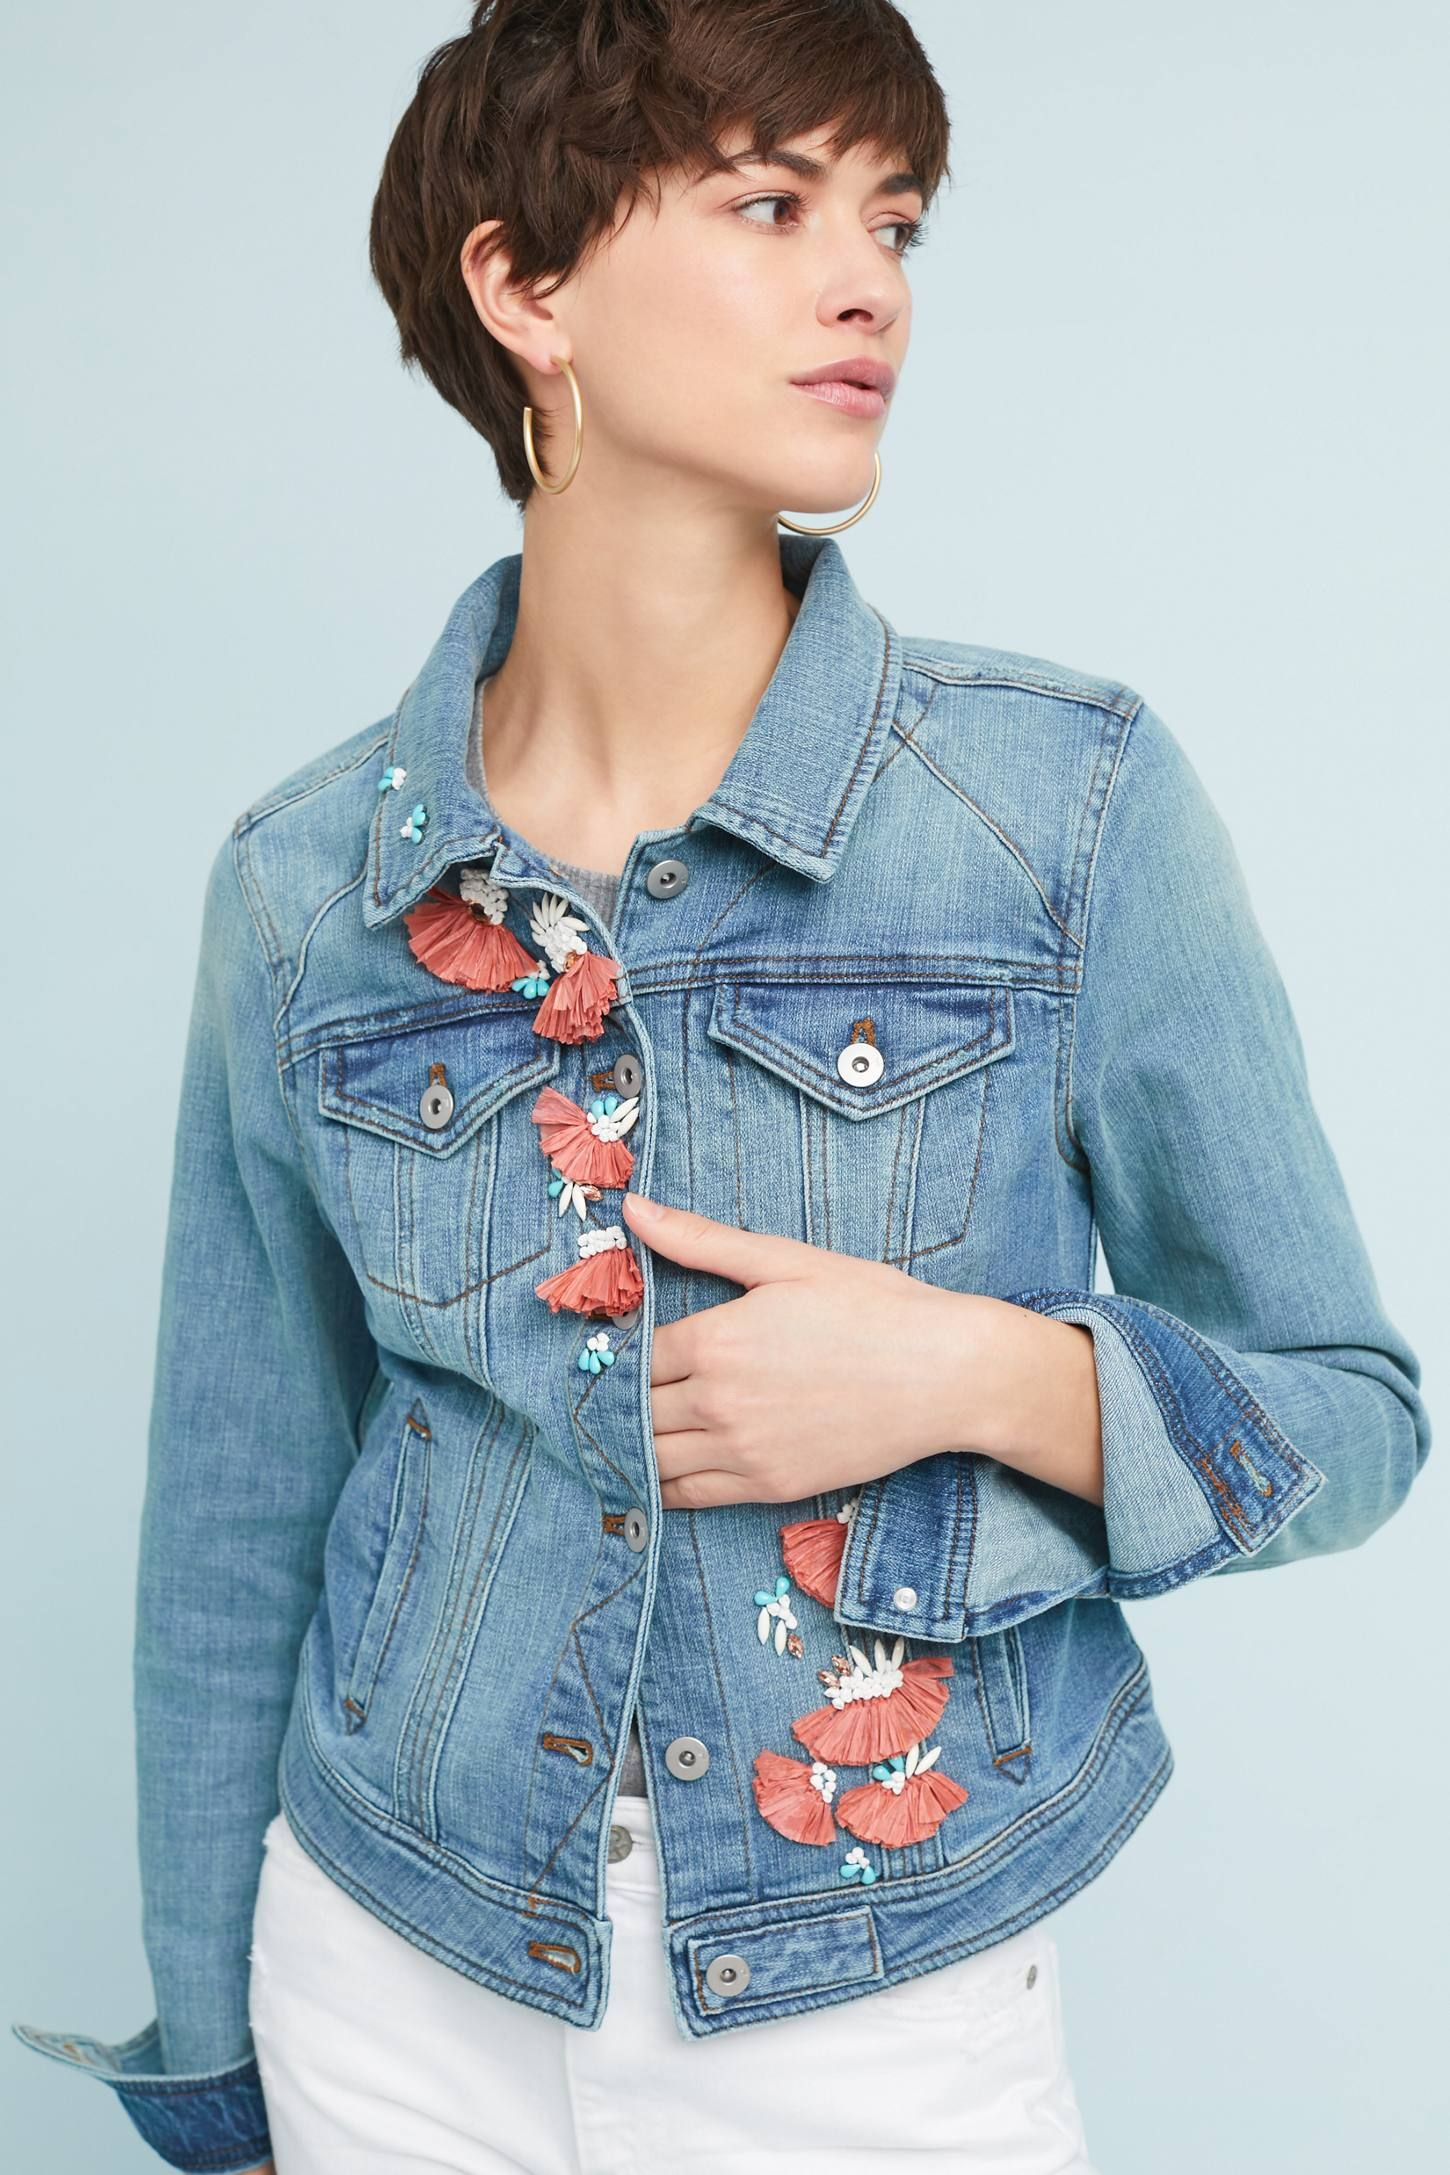 d9ec15288711 Shop the Pilcro Embellished Denim Jacket and more Anthropologie at  Anthropologie today. Read customer reviews